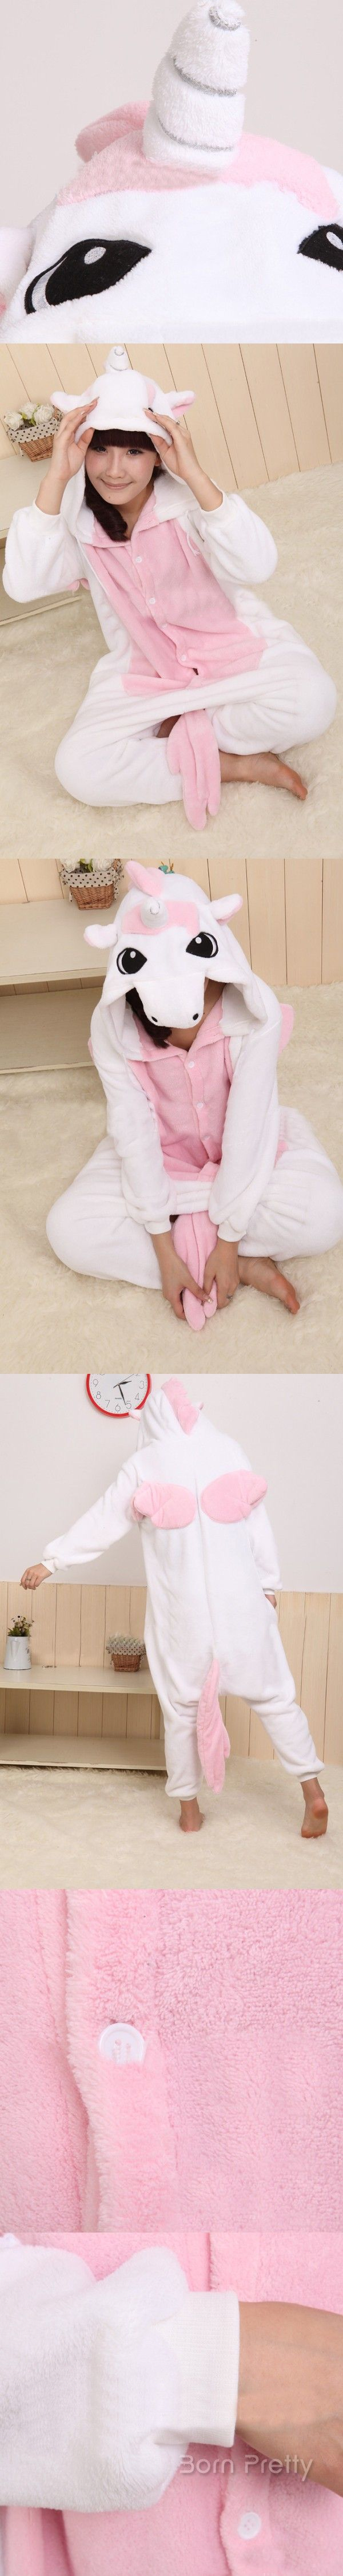 One-piece Unicorn Patterned Kigurumi Pajamas Cosplay Costume - BornPrettyStore.com